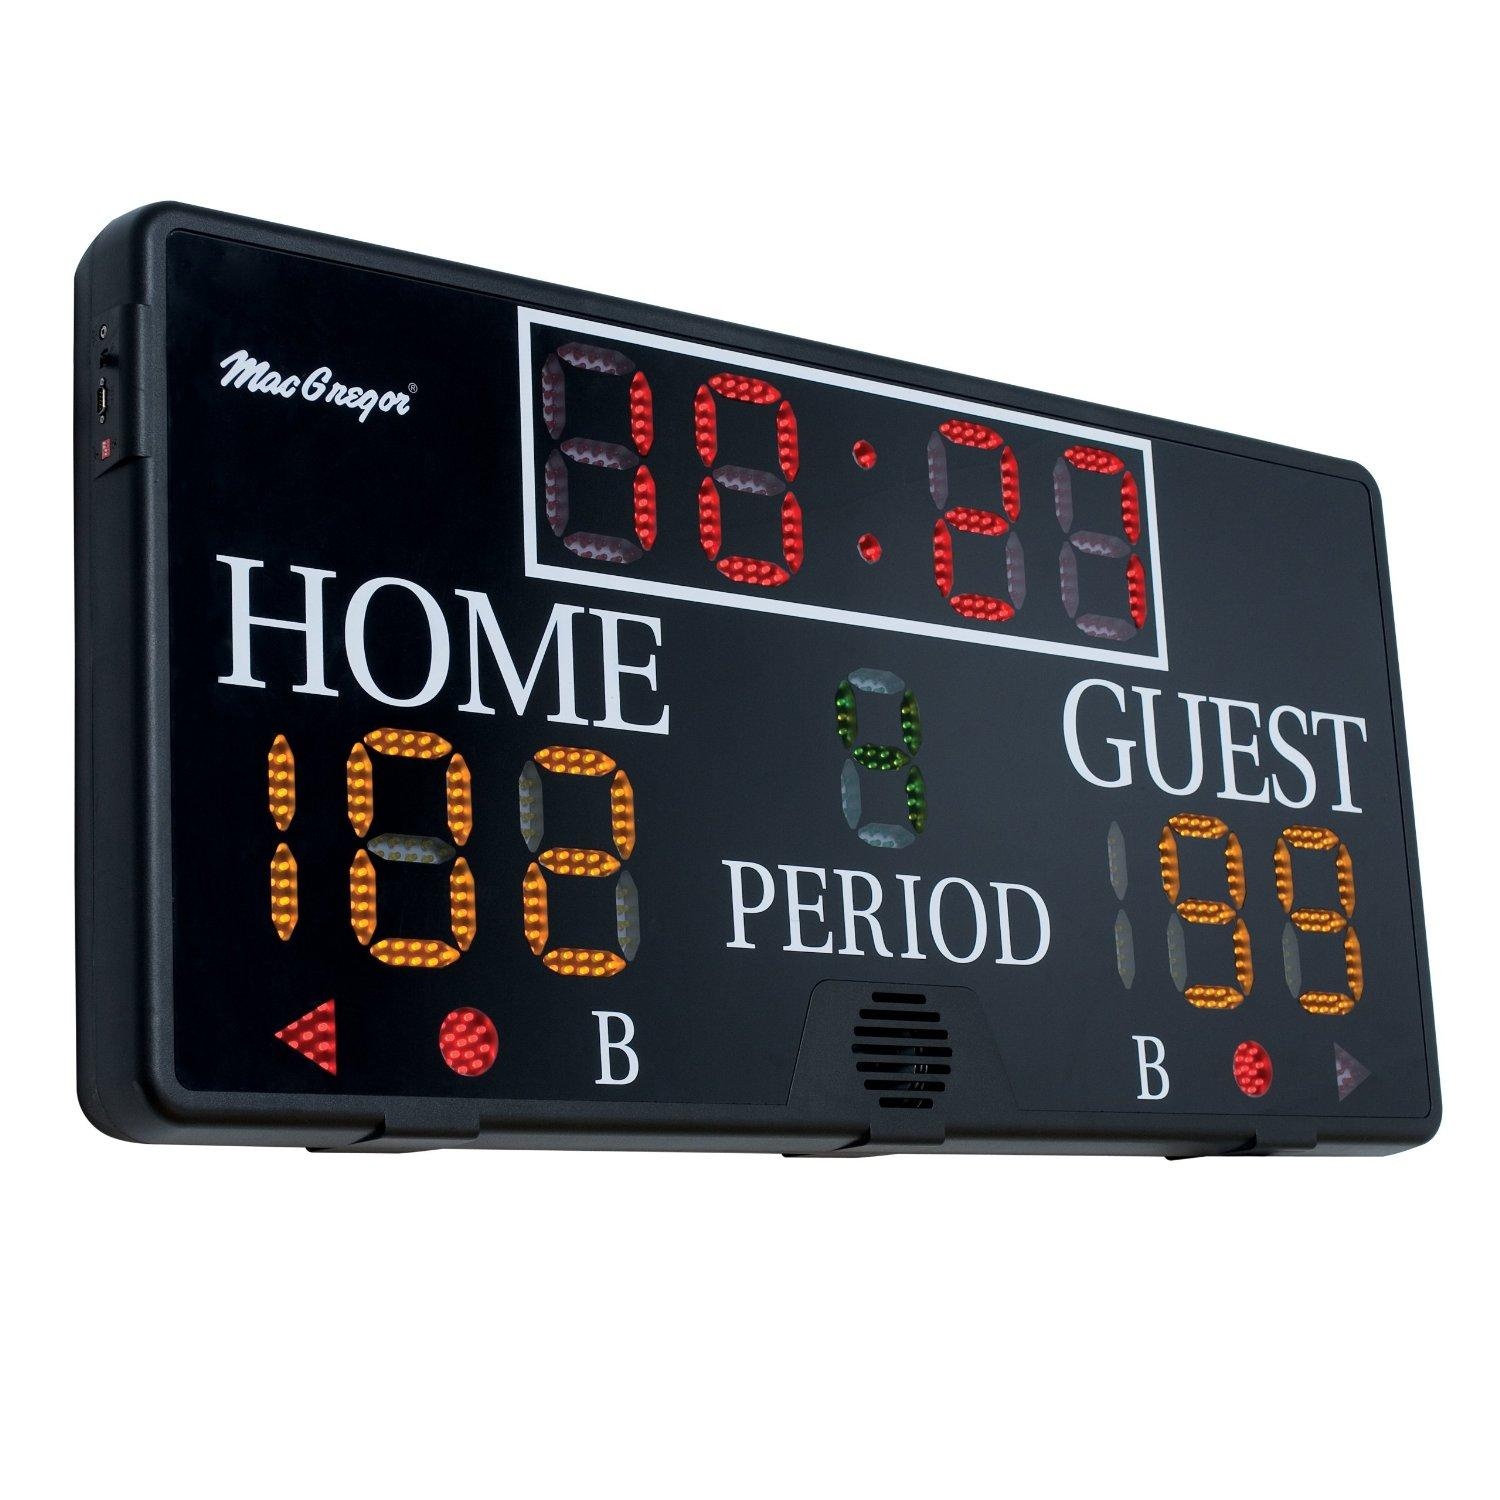 scoreboard basketball clipart macgregor multisport indoor scoreboards clip remote control cliparts clipartpanda volleyball sports library amazon wrestling lights outdoors led